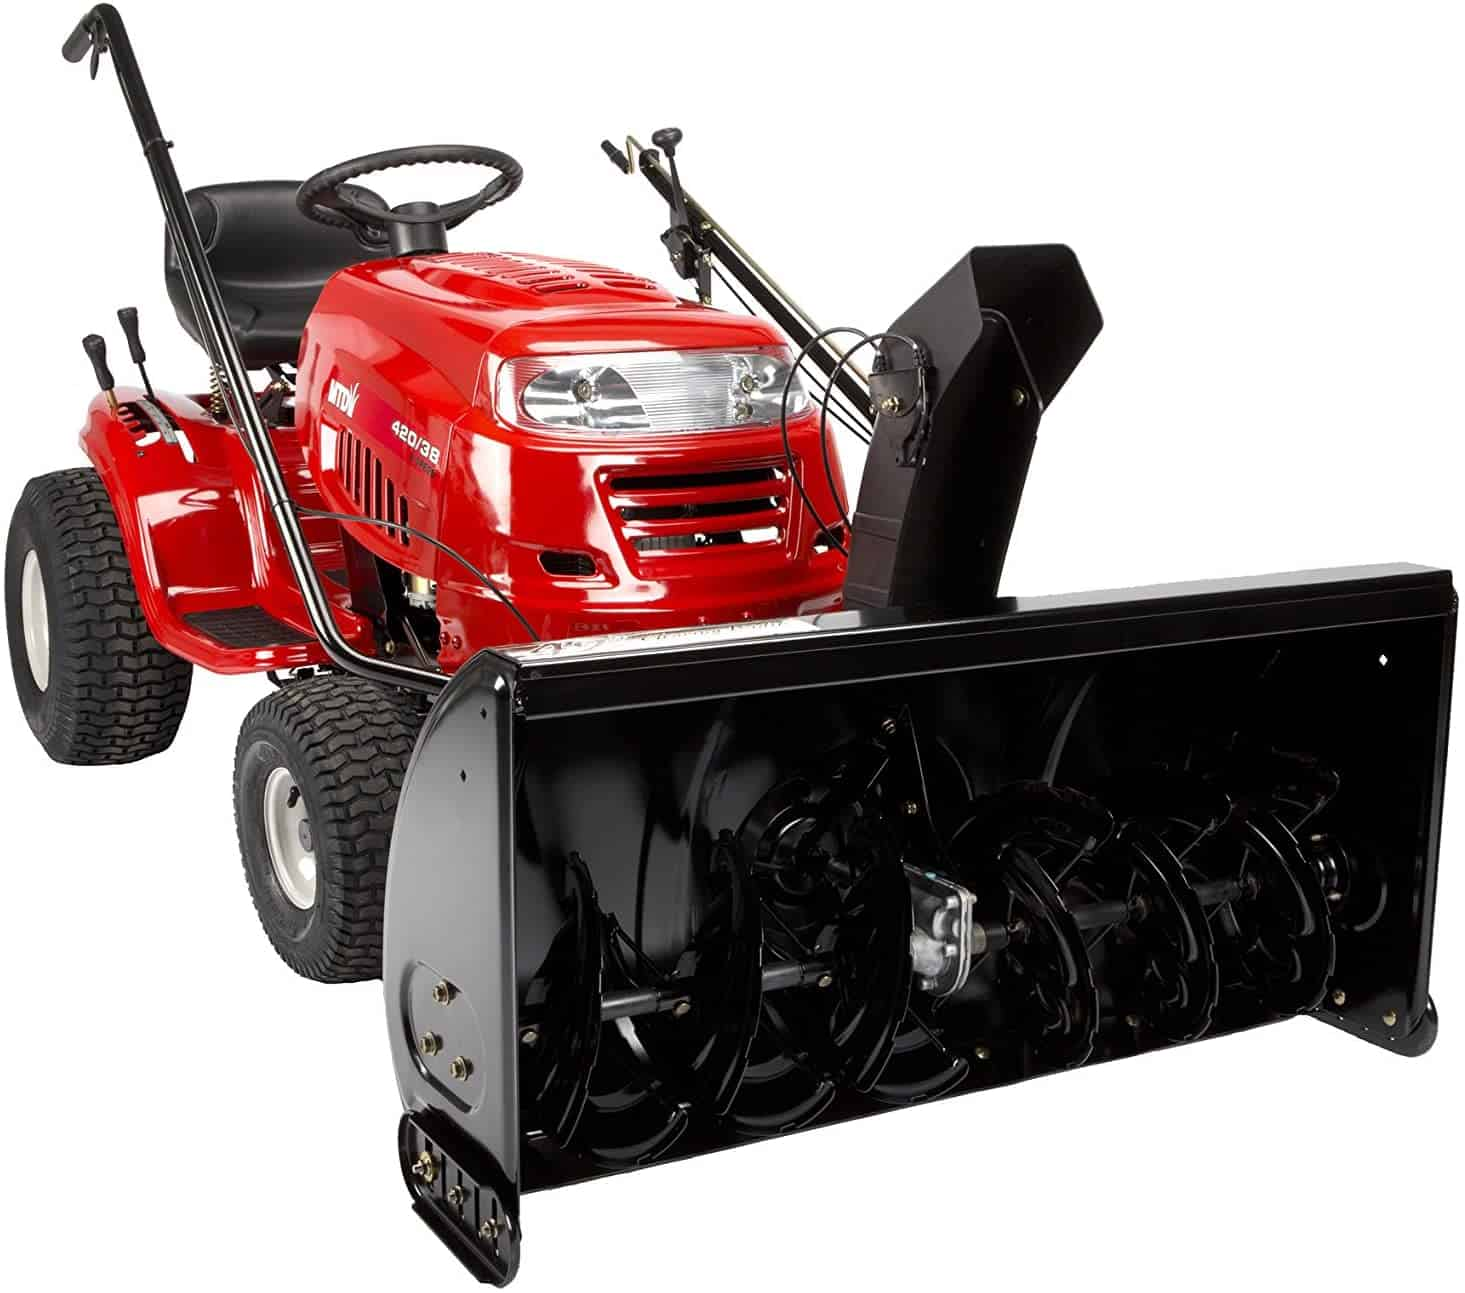 Arnold MTD Genuine Parts Two-Stage Snow Thrower Mower Attachment - 42-Inch Mowers